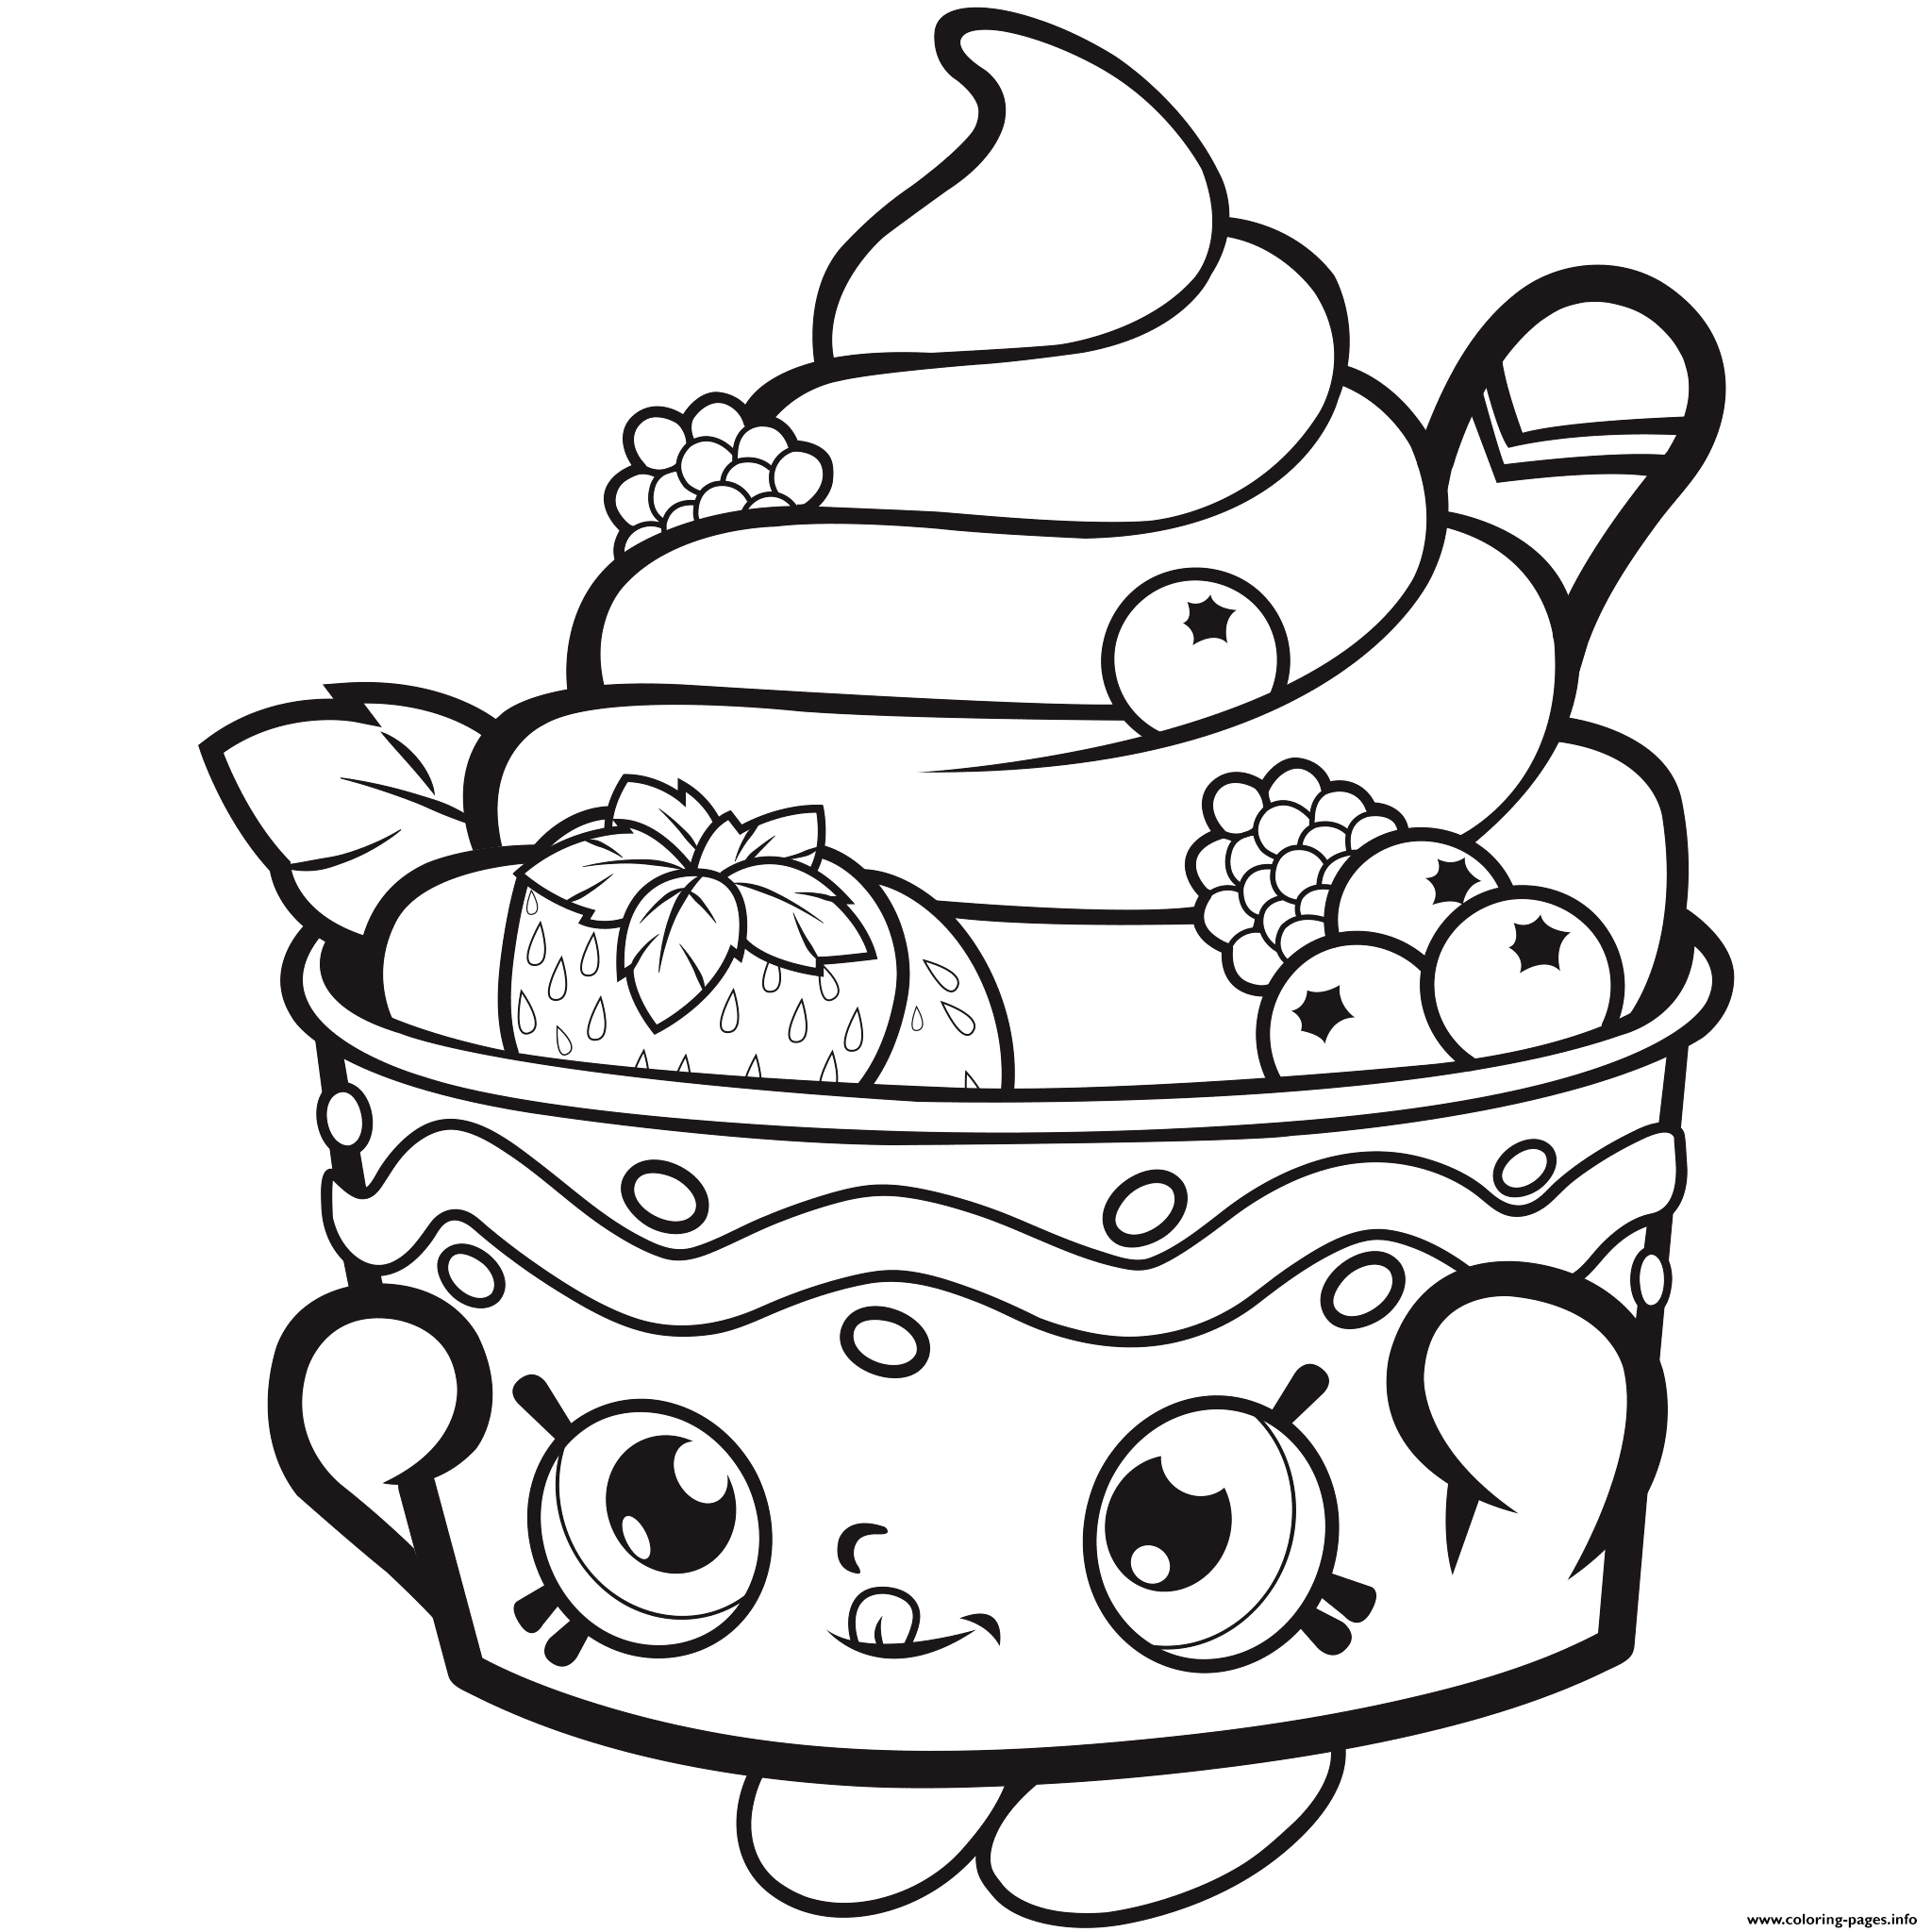 Printable strawberry coloring page. Free PDF download at http ... | 2048x2048